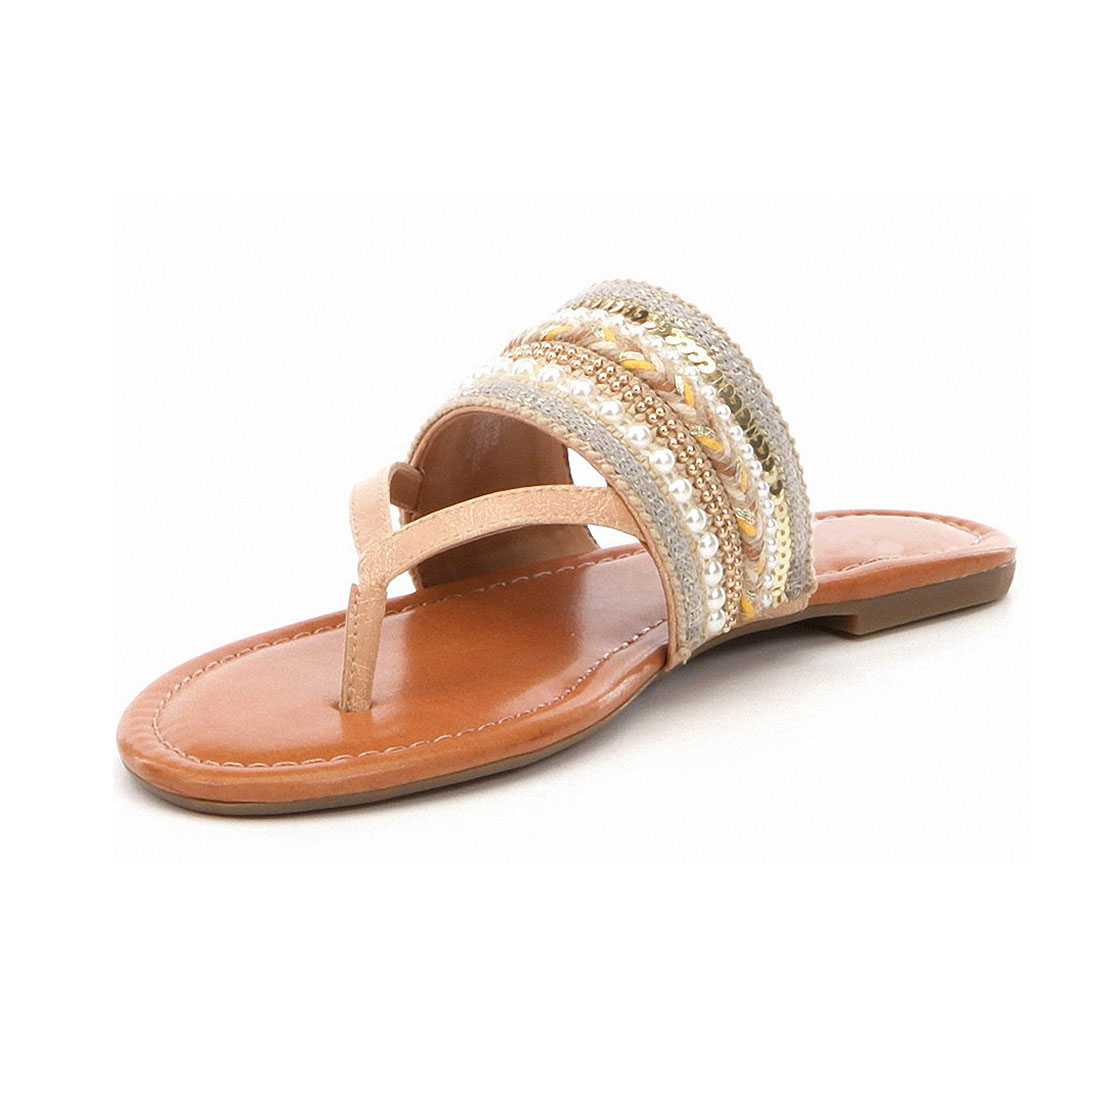 Hot sell comfortable woven upper leather flat slipper lady sandals YB3062